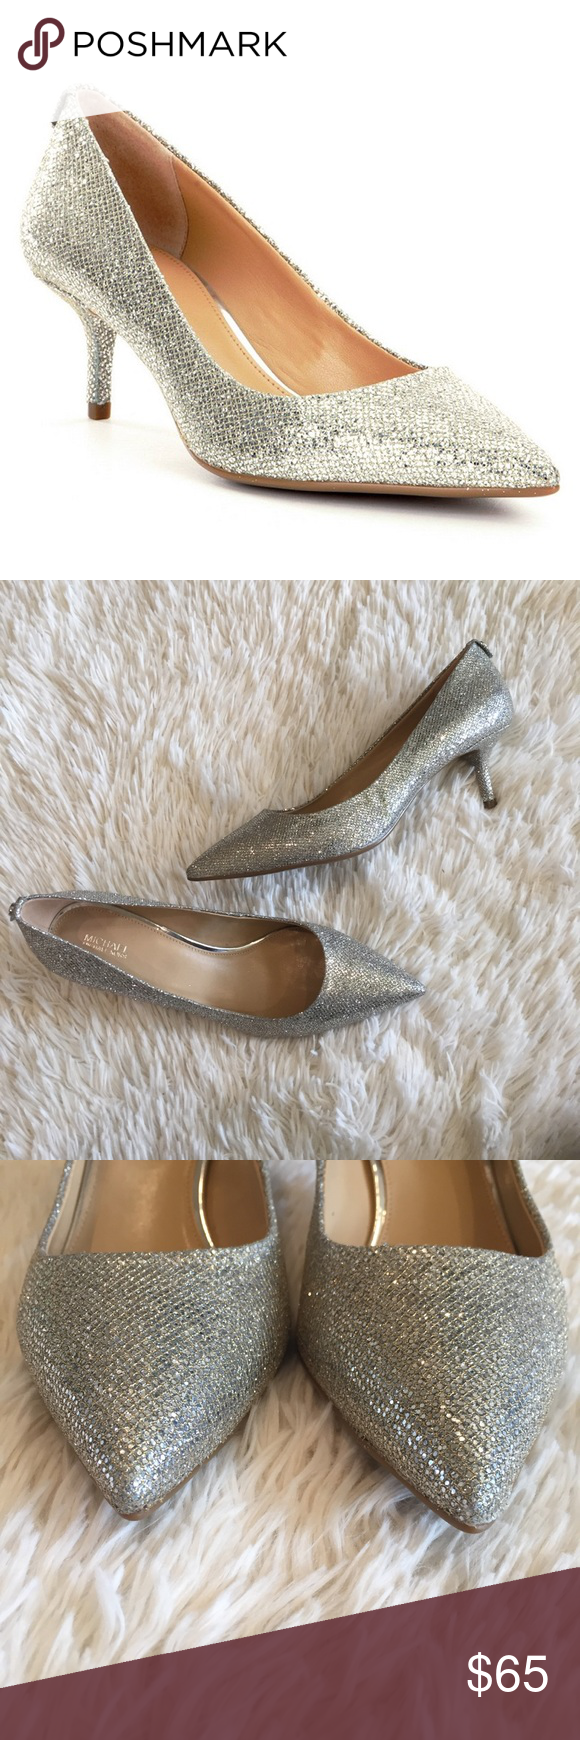 bdf8c7d6f16 Michael Kors Silver Glitter Flex Kitten Heels New without box ...